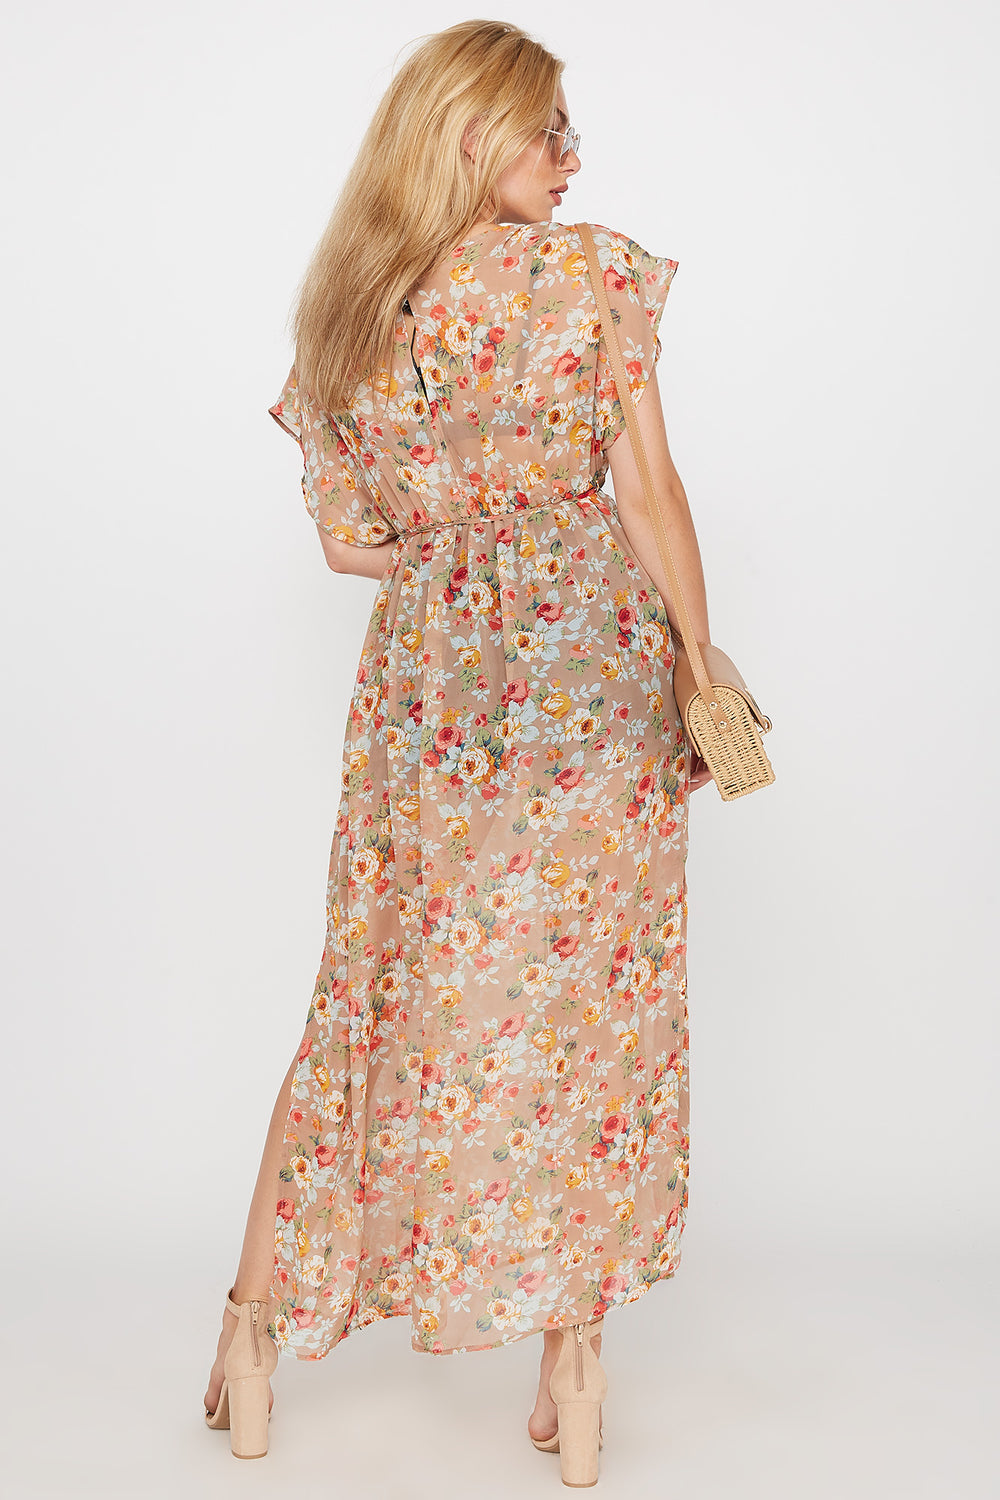 Sheer Floral Self-Tie Longline Side Slit Kimono Assorted